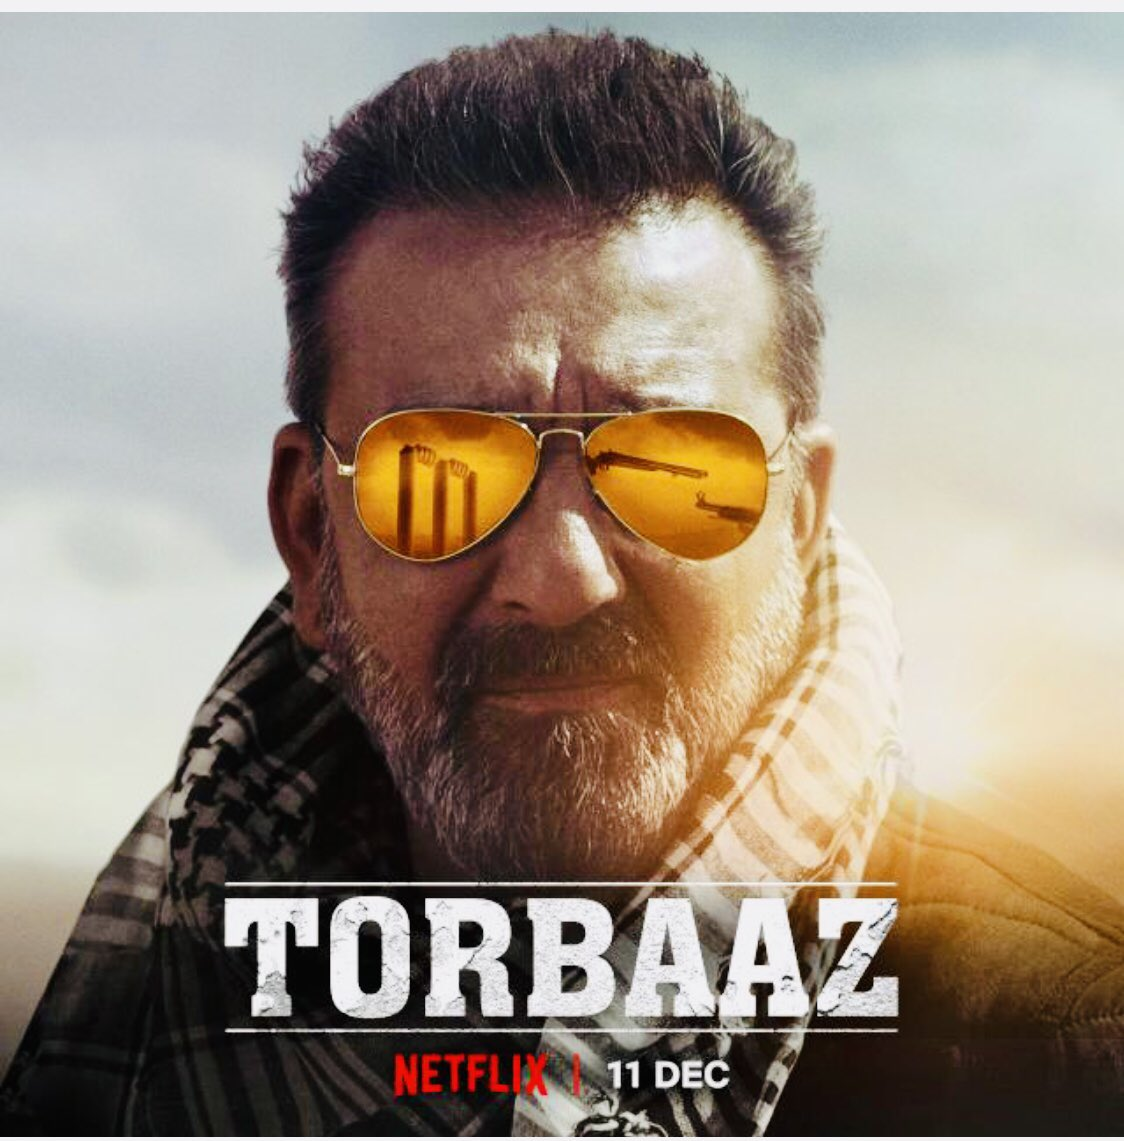 Their only purpose was to die for someone else's ideals. Until he brought them something bigger. #Torbaaz, with a stellar cast of @duttsanjay, @RahulDevRising & @NargisFakhri is premiering today, 11 December, only on @netflix !! @malik_girish!